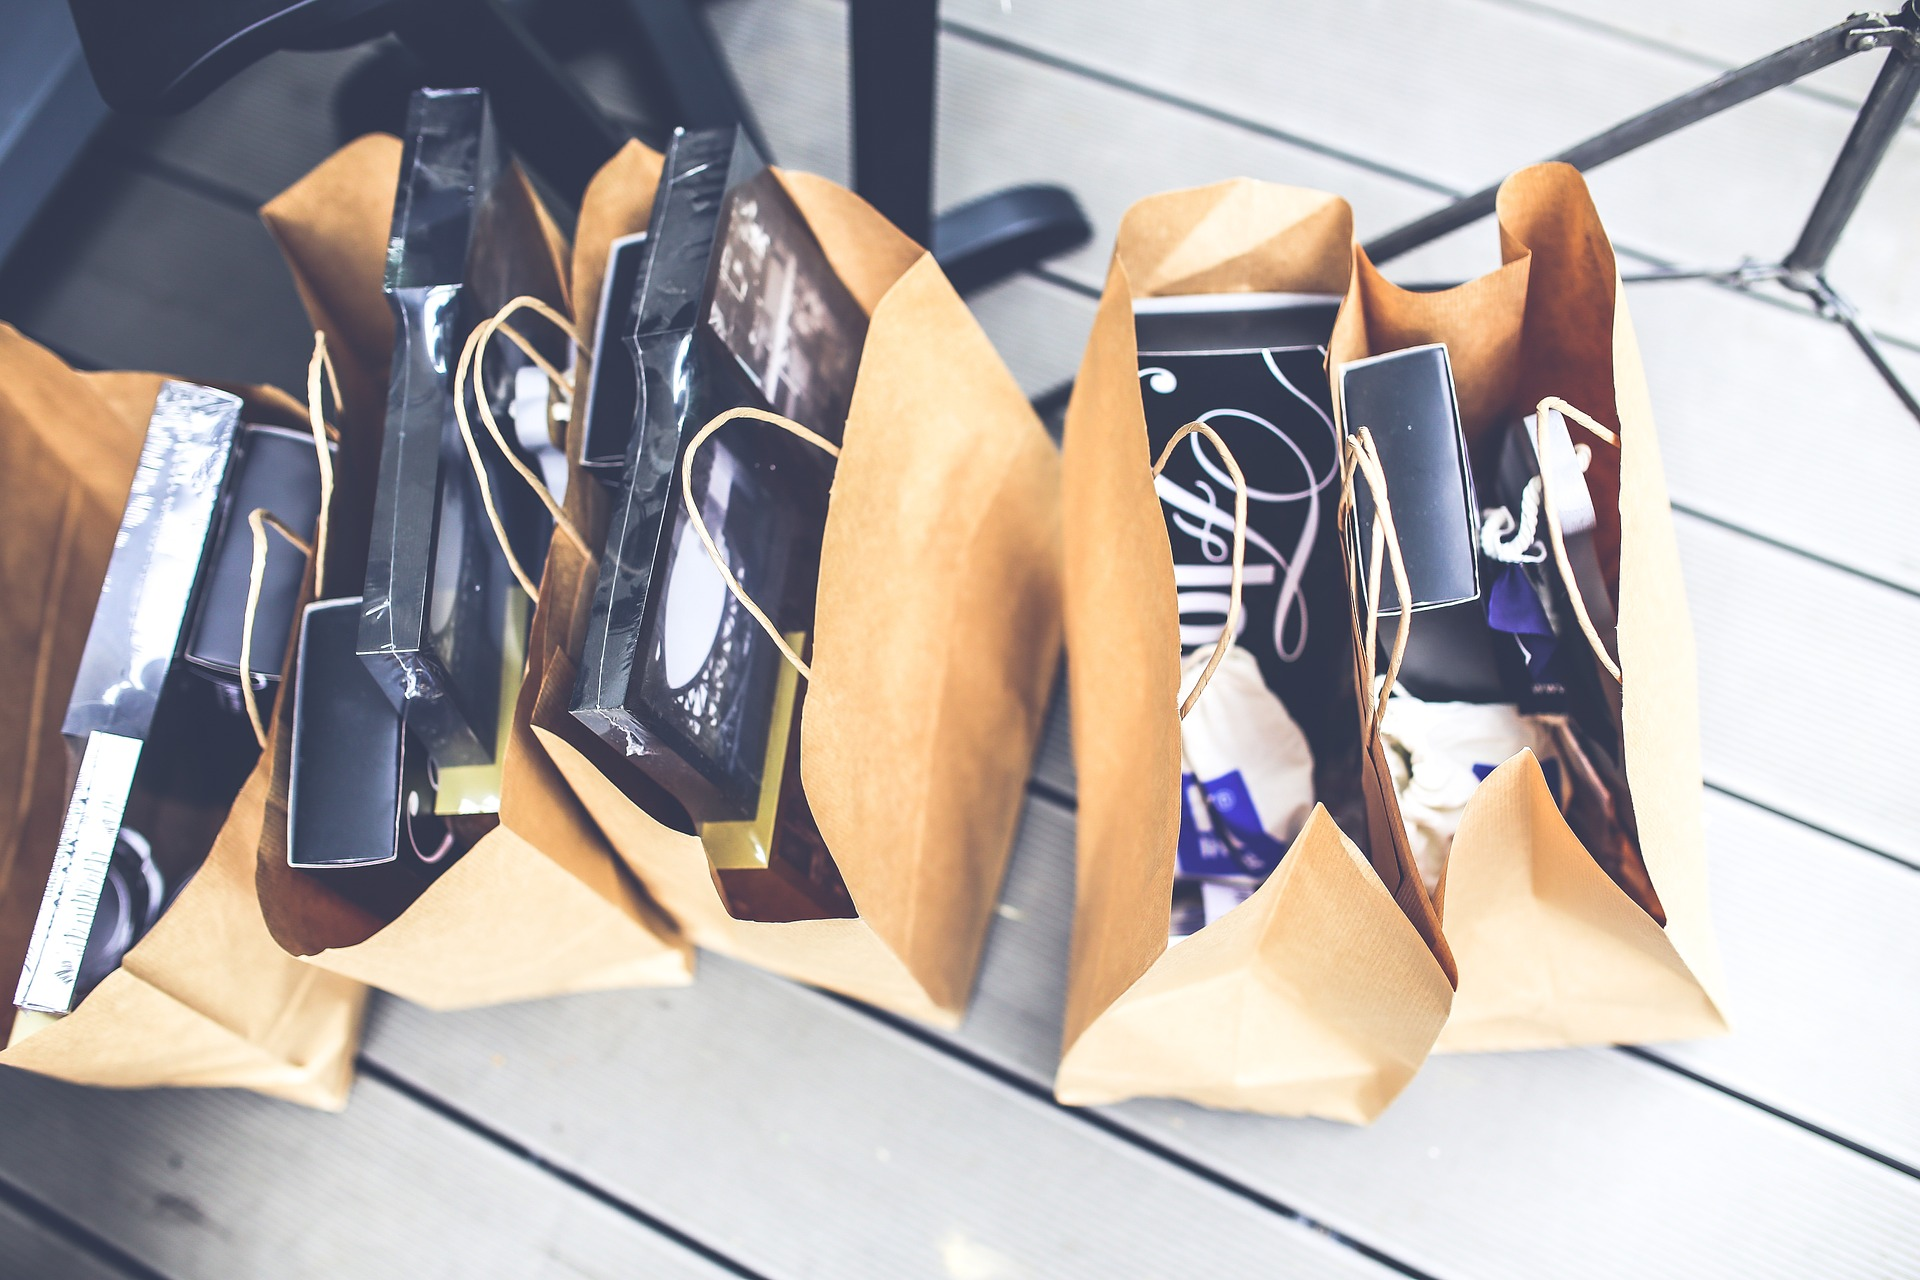 Five brown paper bags with items inside placed on the floor.